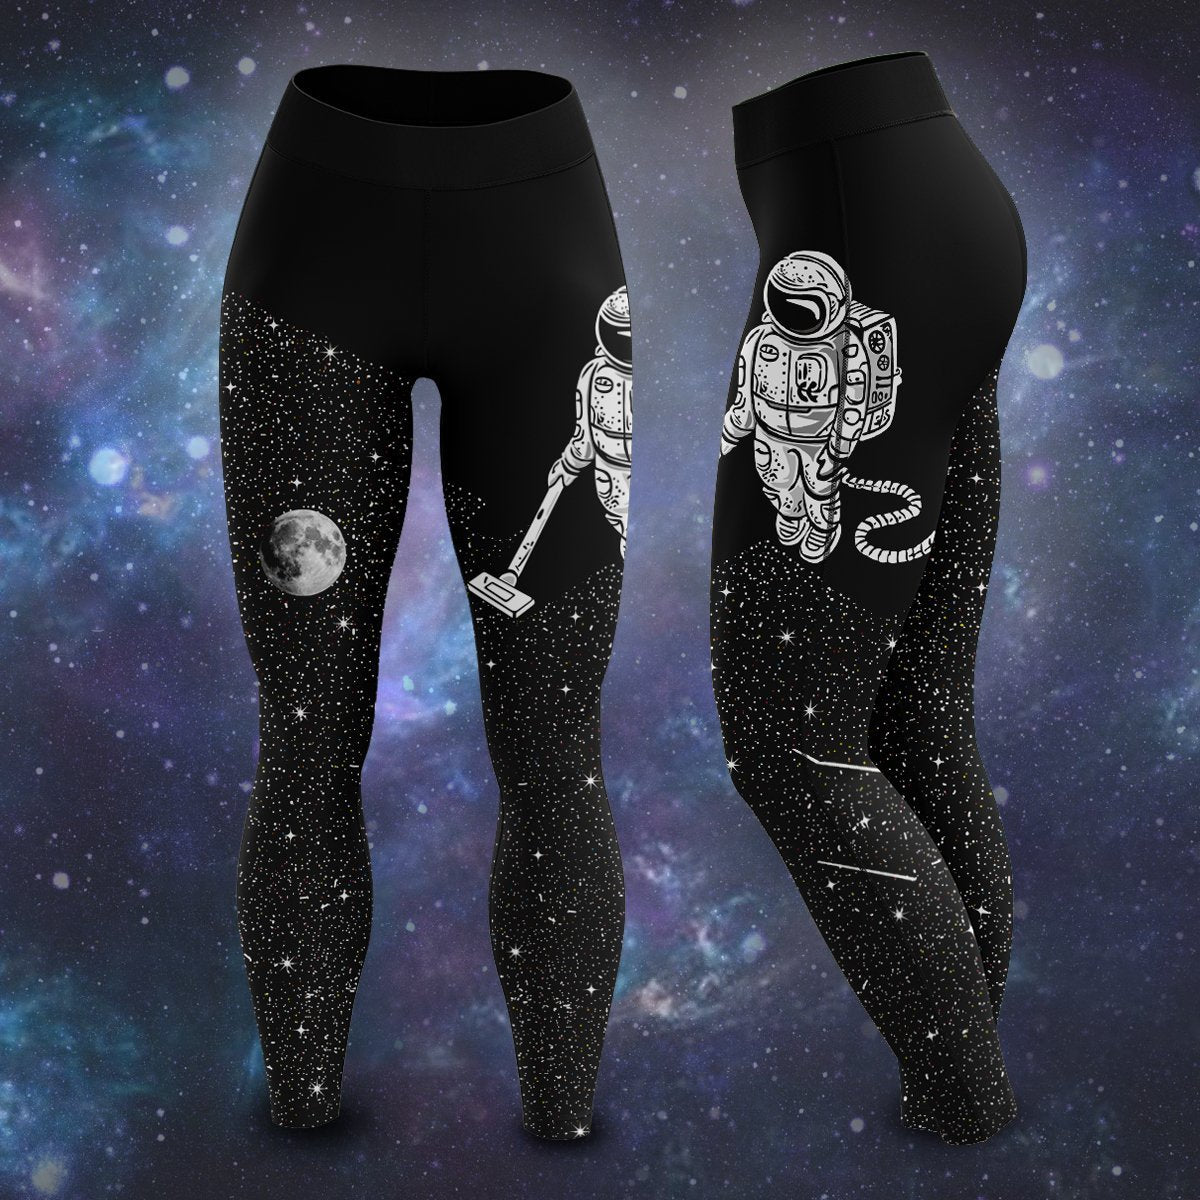 Carpet Of Stars Unisex Tights S Leggings